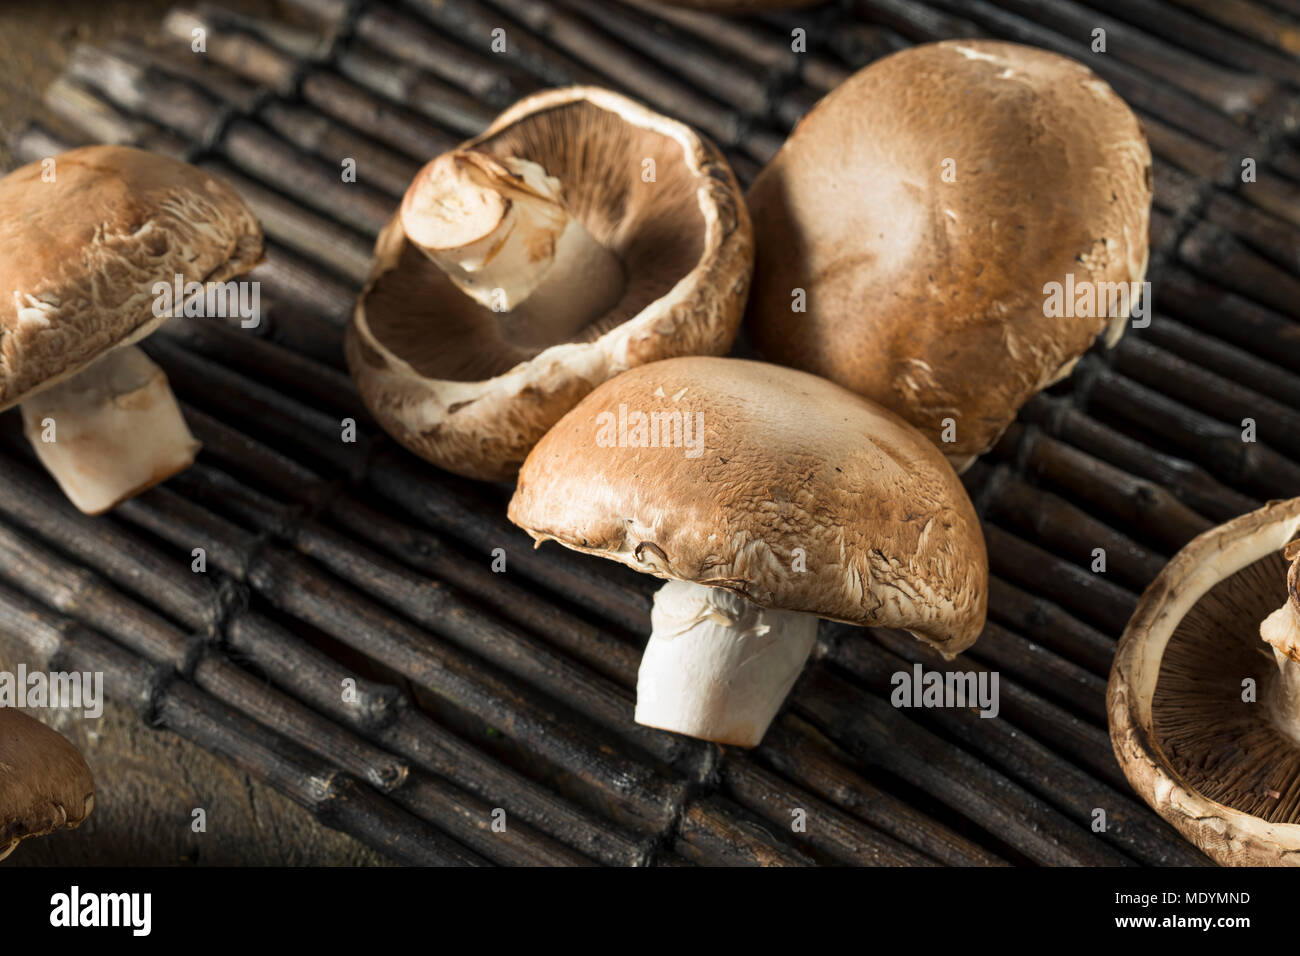 Raw Organic Portobello Mushrooms Ready To Cook Stock Photo Alamy